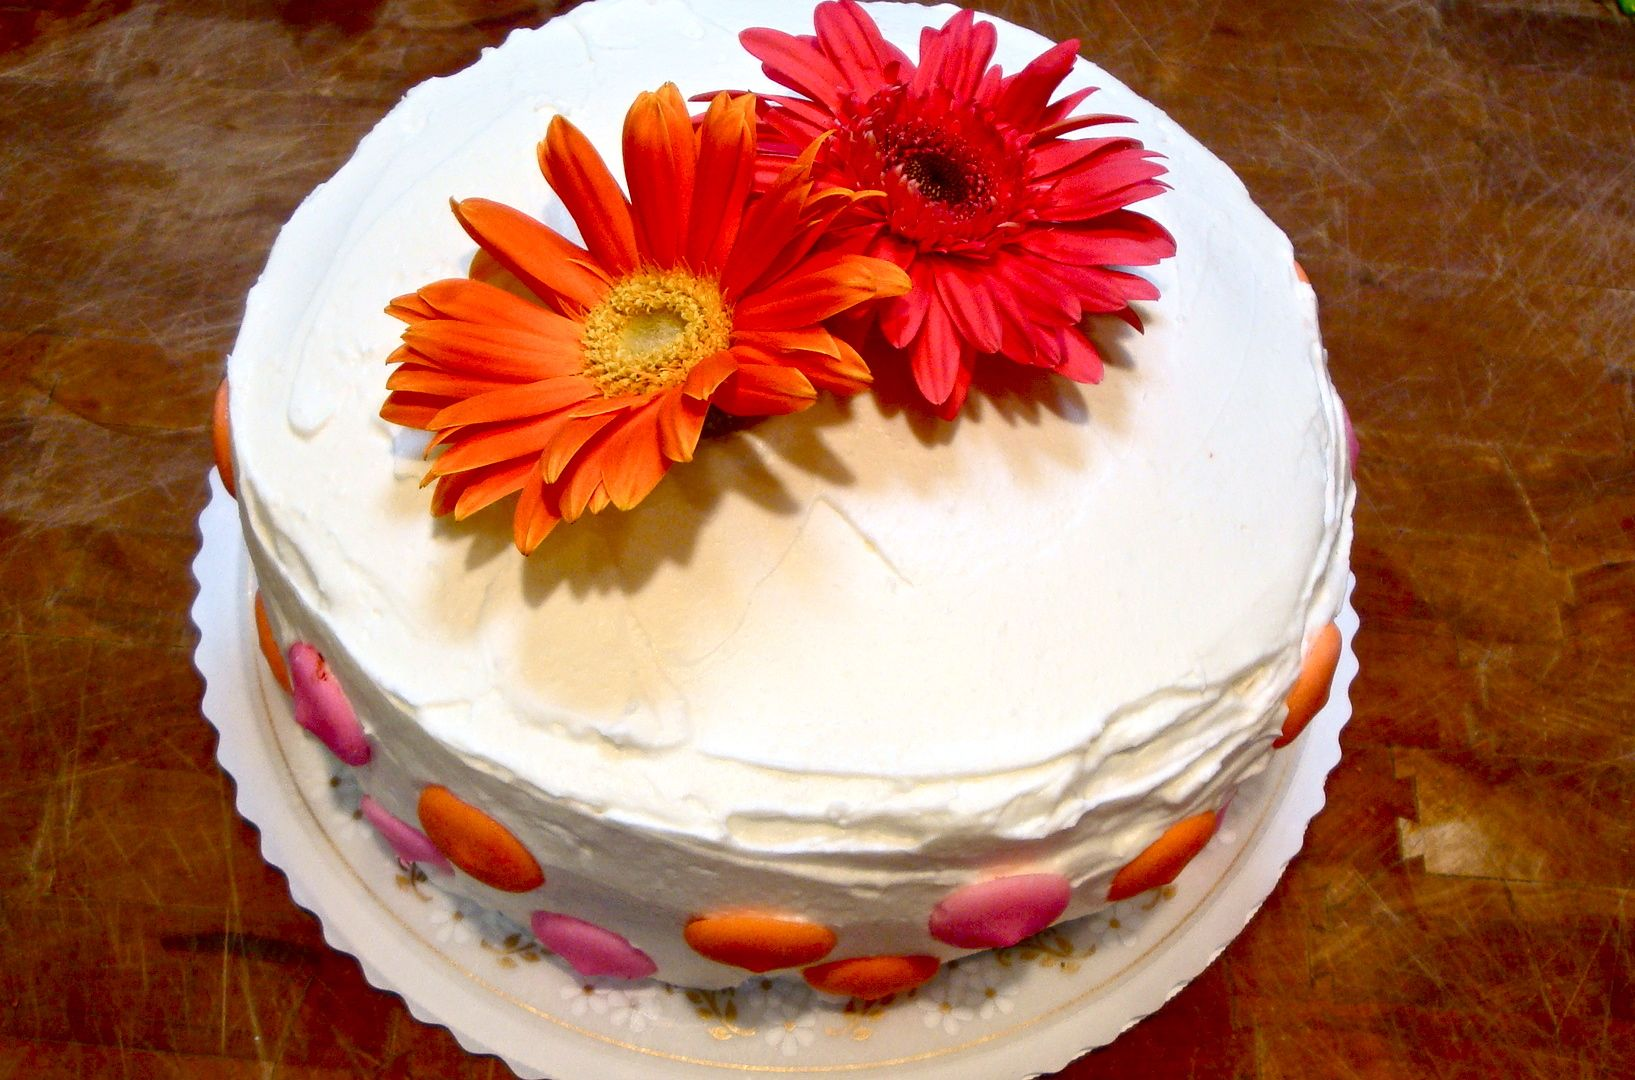 Birthday Cake Filling Could Be Anything From Berries And Cream To